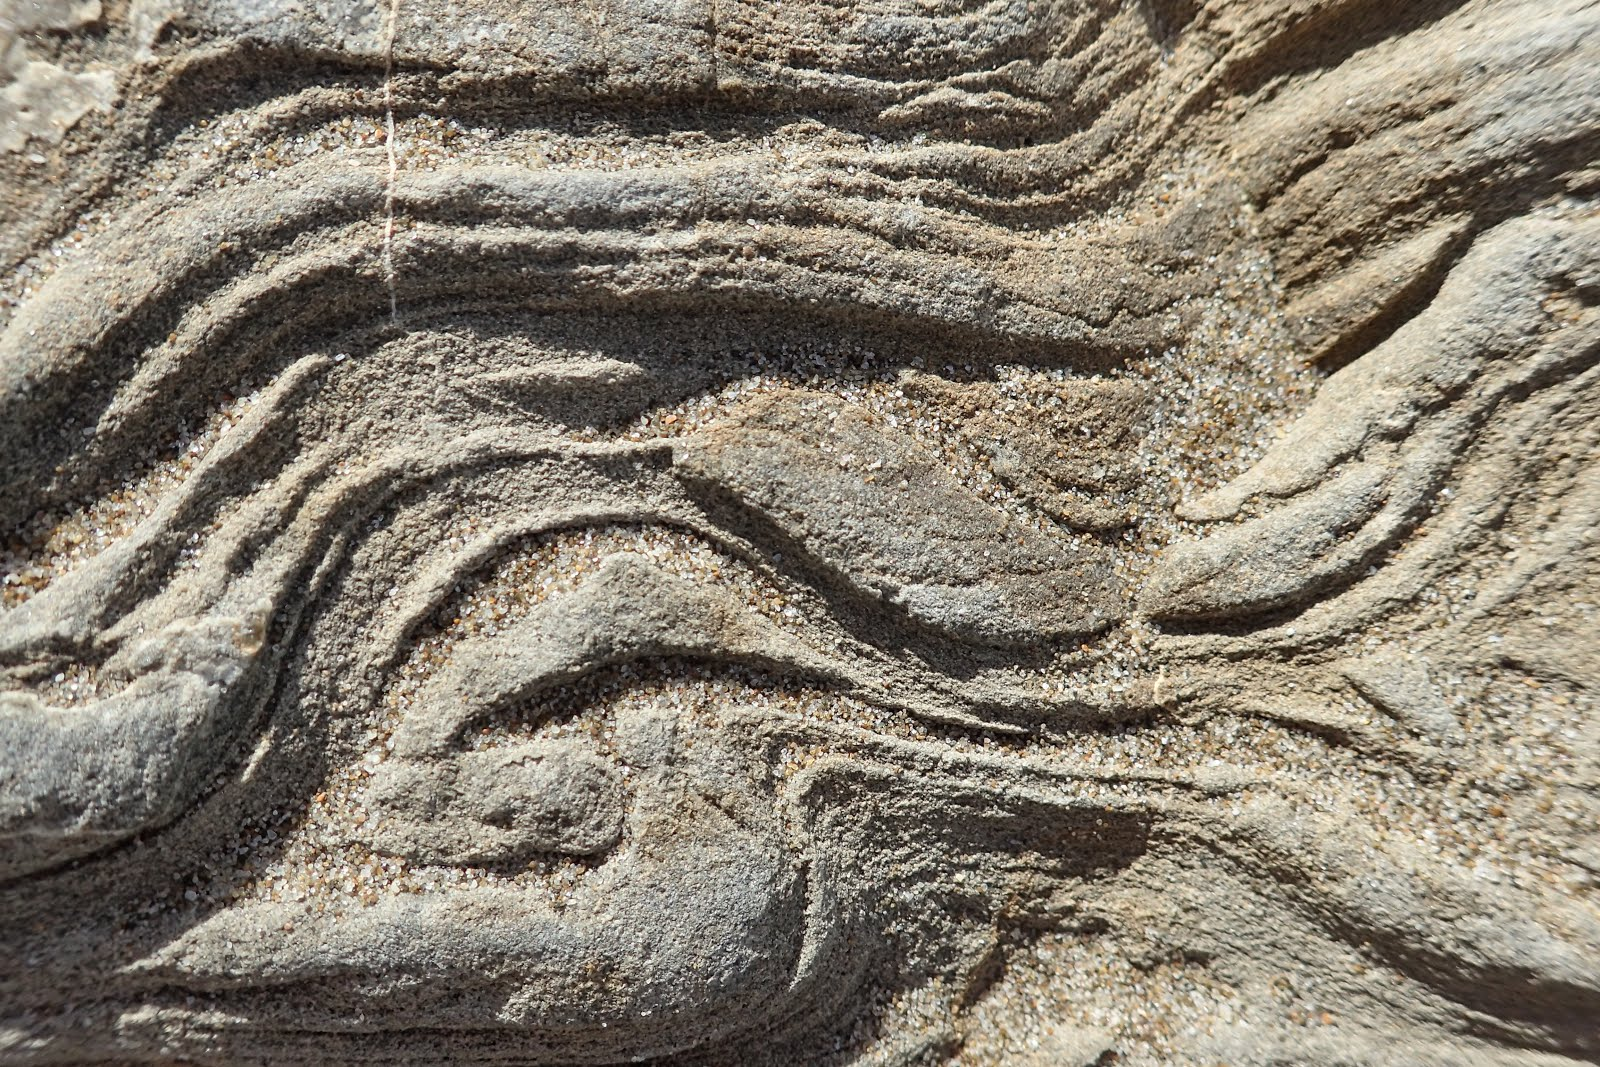 Rock layers on the coast